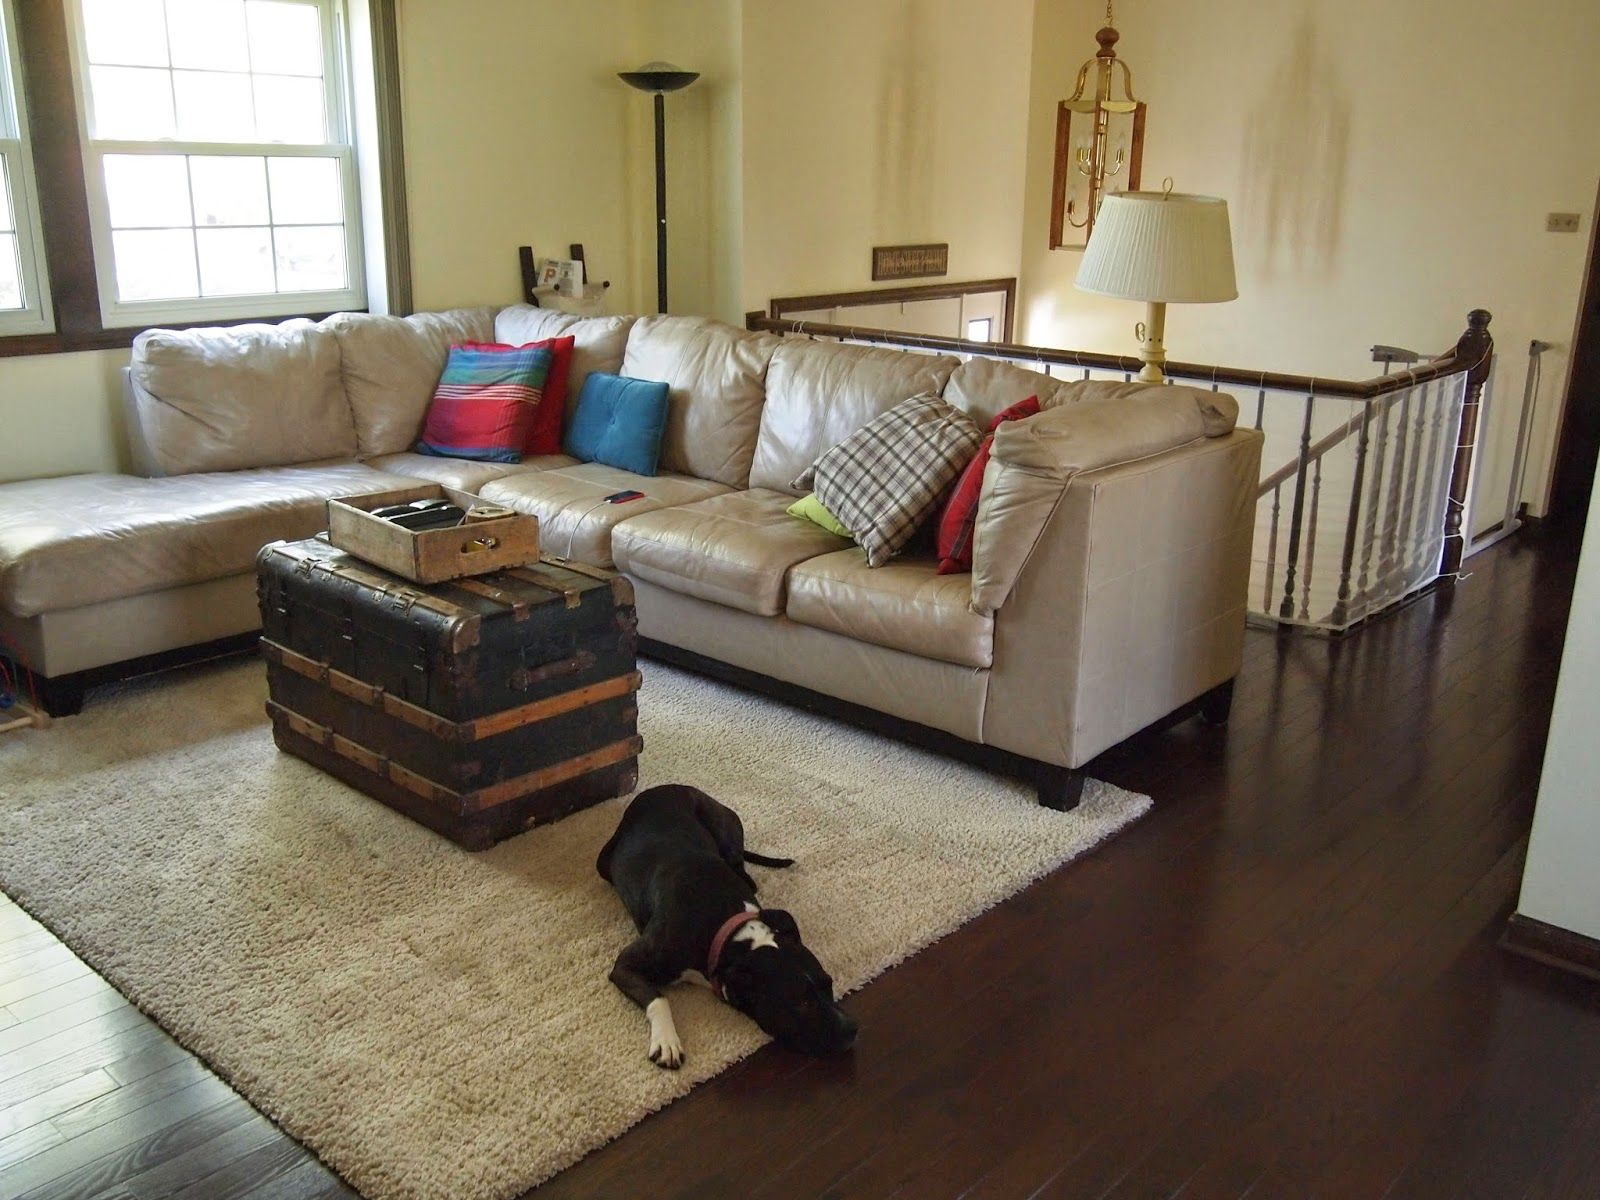 Ranch Home Decorating Ideas Part - 43: Image Result For Raised Ranch House Interior Decorating Ideas